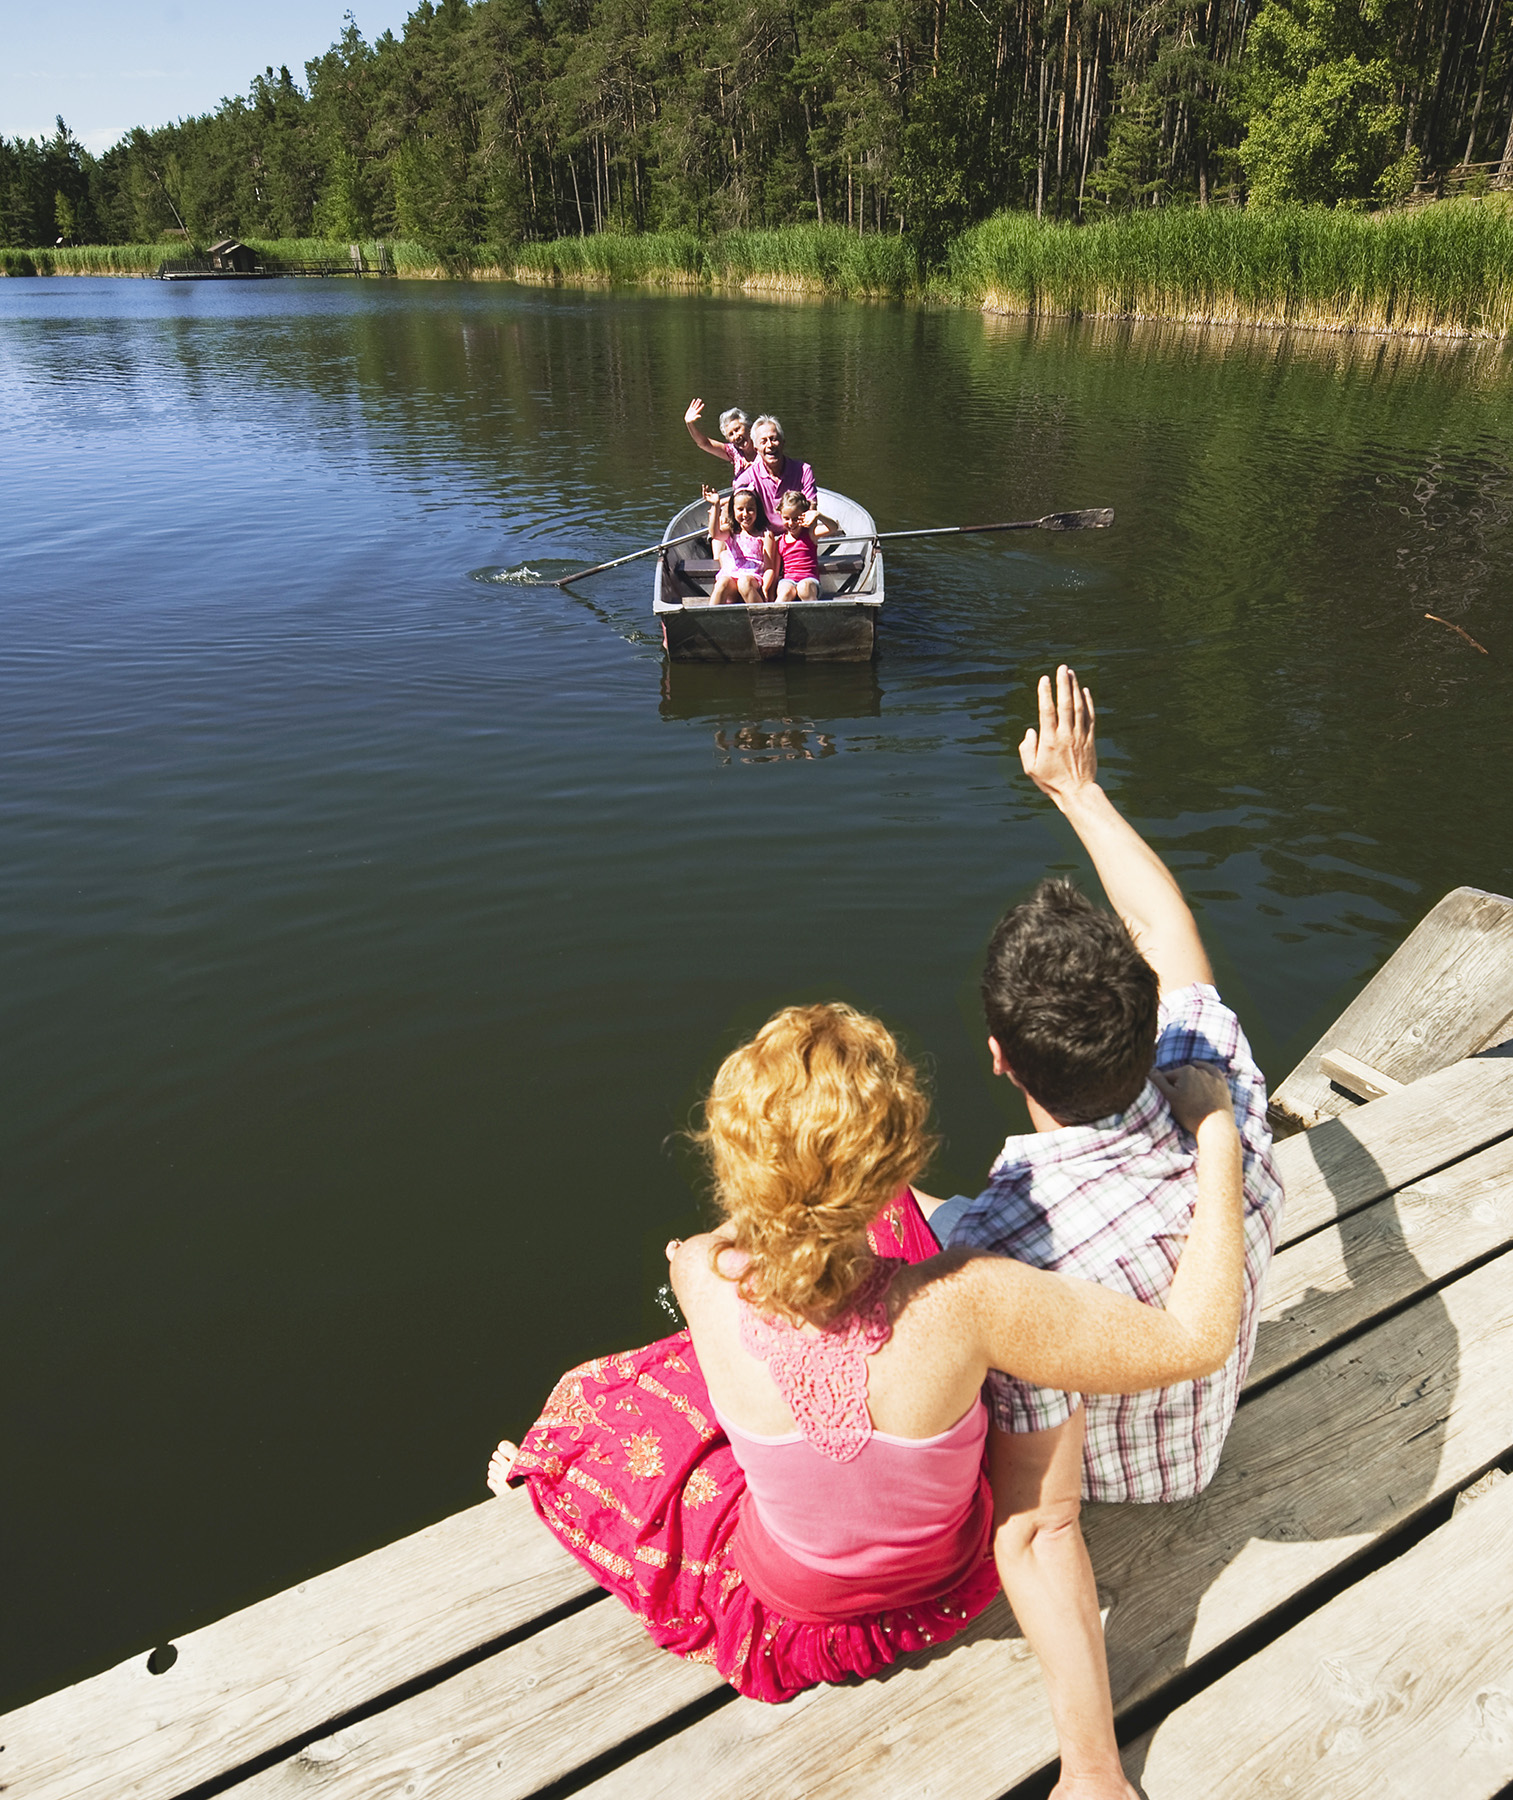 Couple waving at family on lake